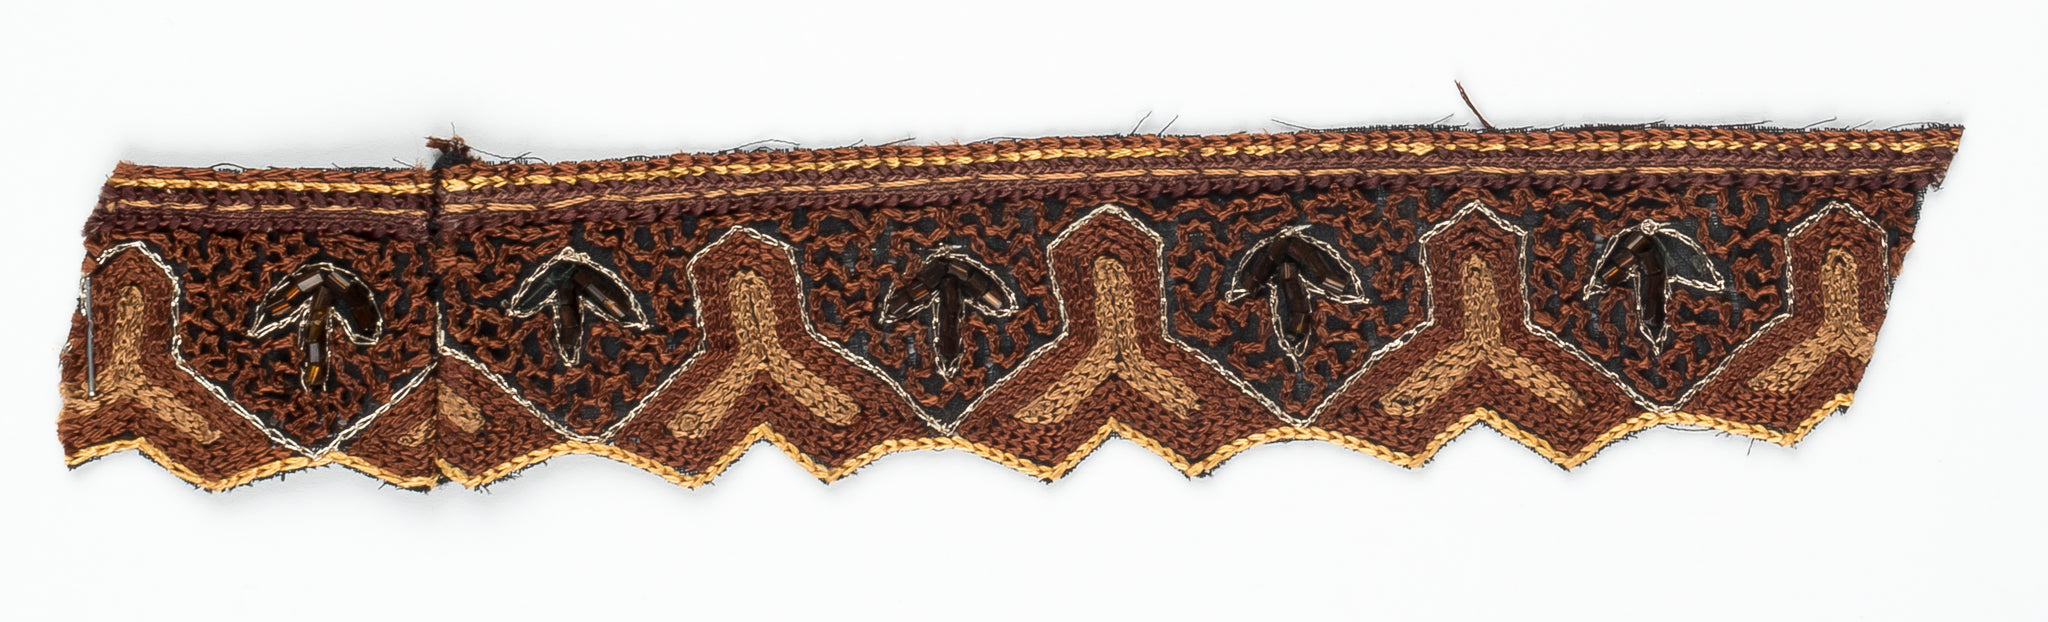 Y-Shaped Handcrafted Indian Floral Trim- Design 1 - Target Trim